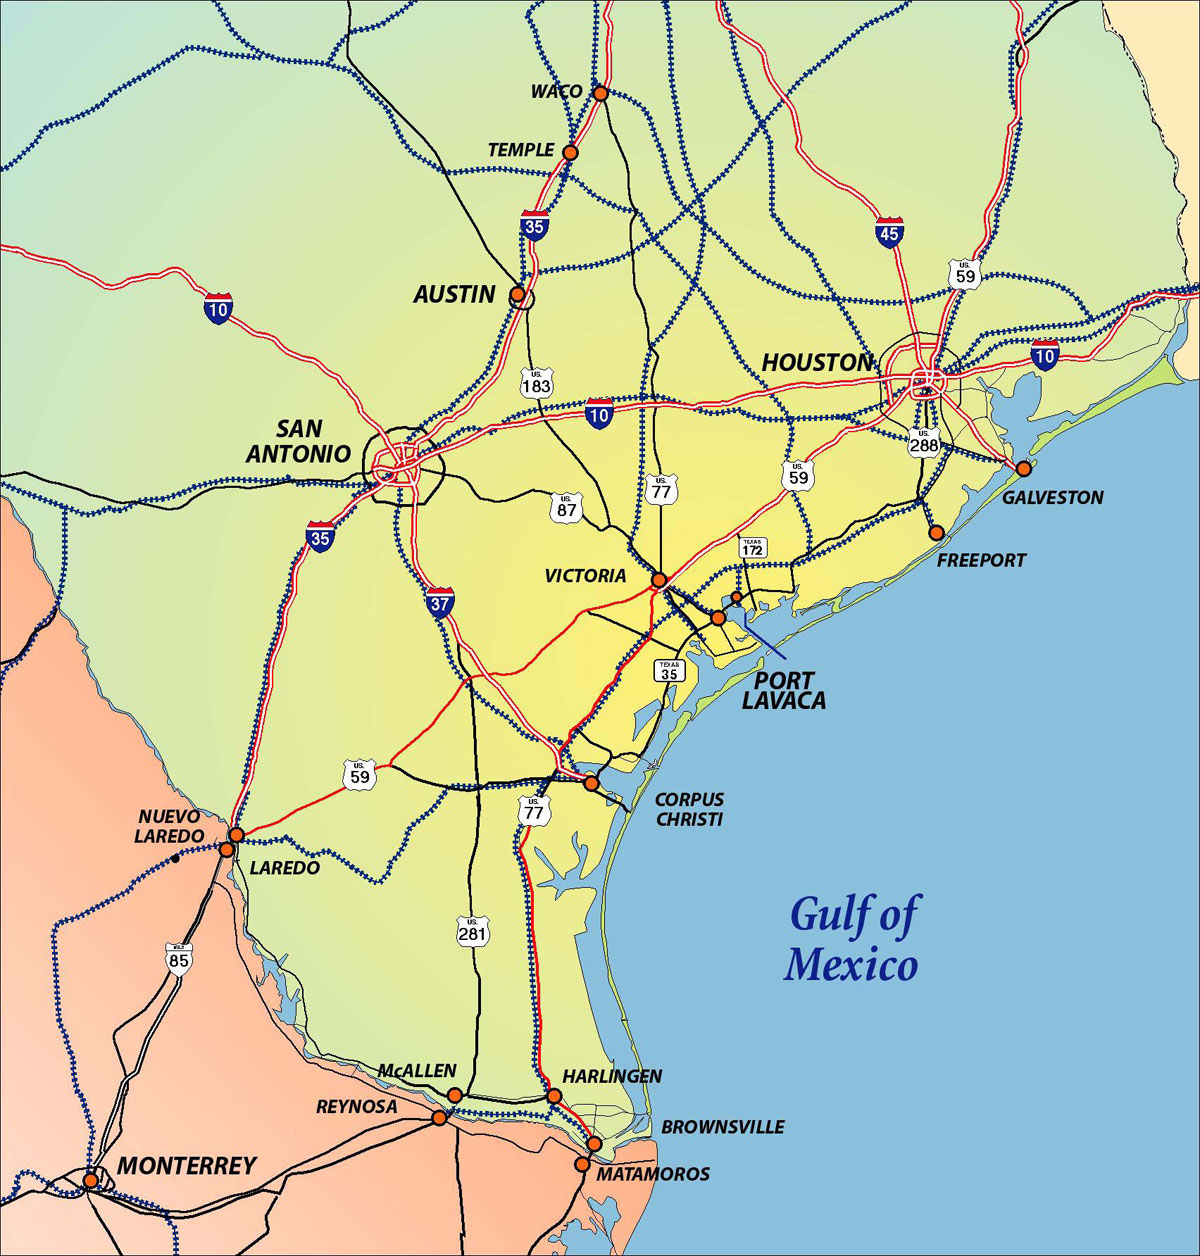 Texas Gulf Coast Maps And Travel Information | Download Free Texas - Map Of Texas Coastline